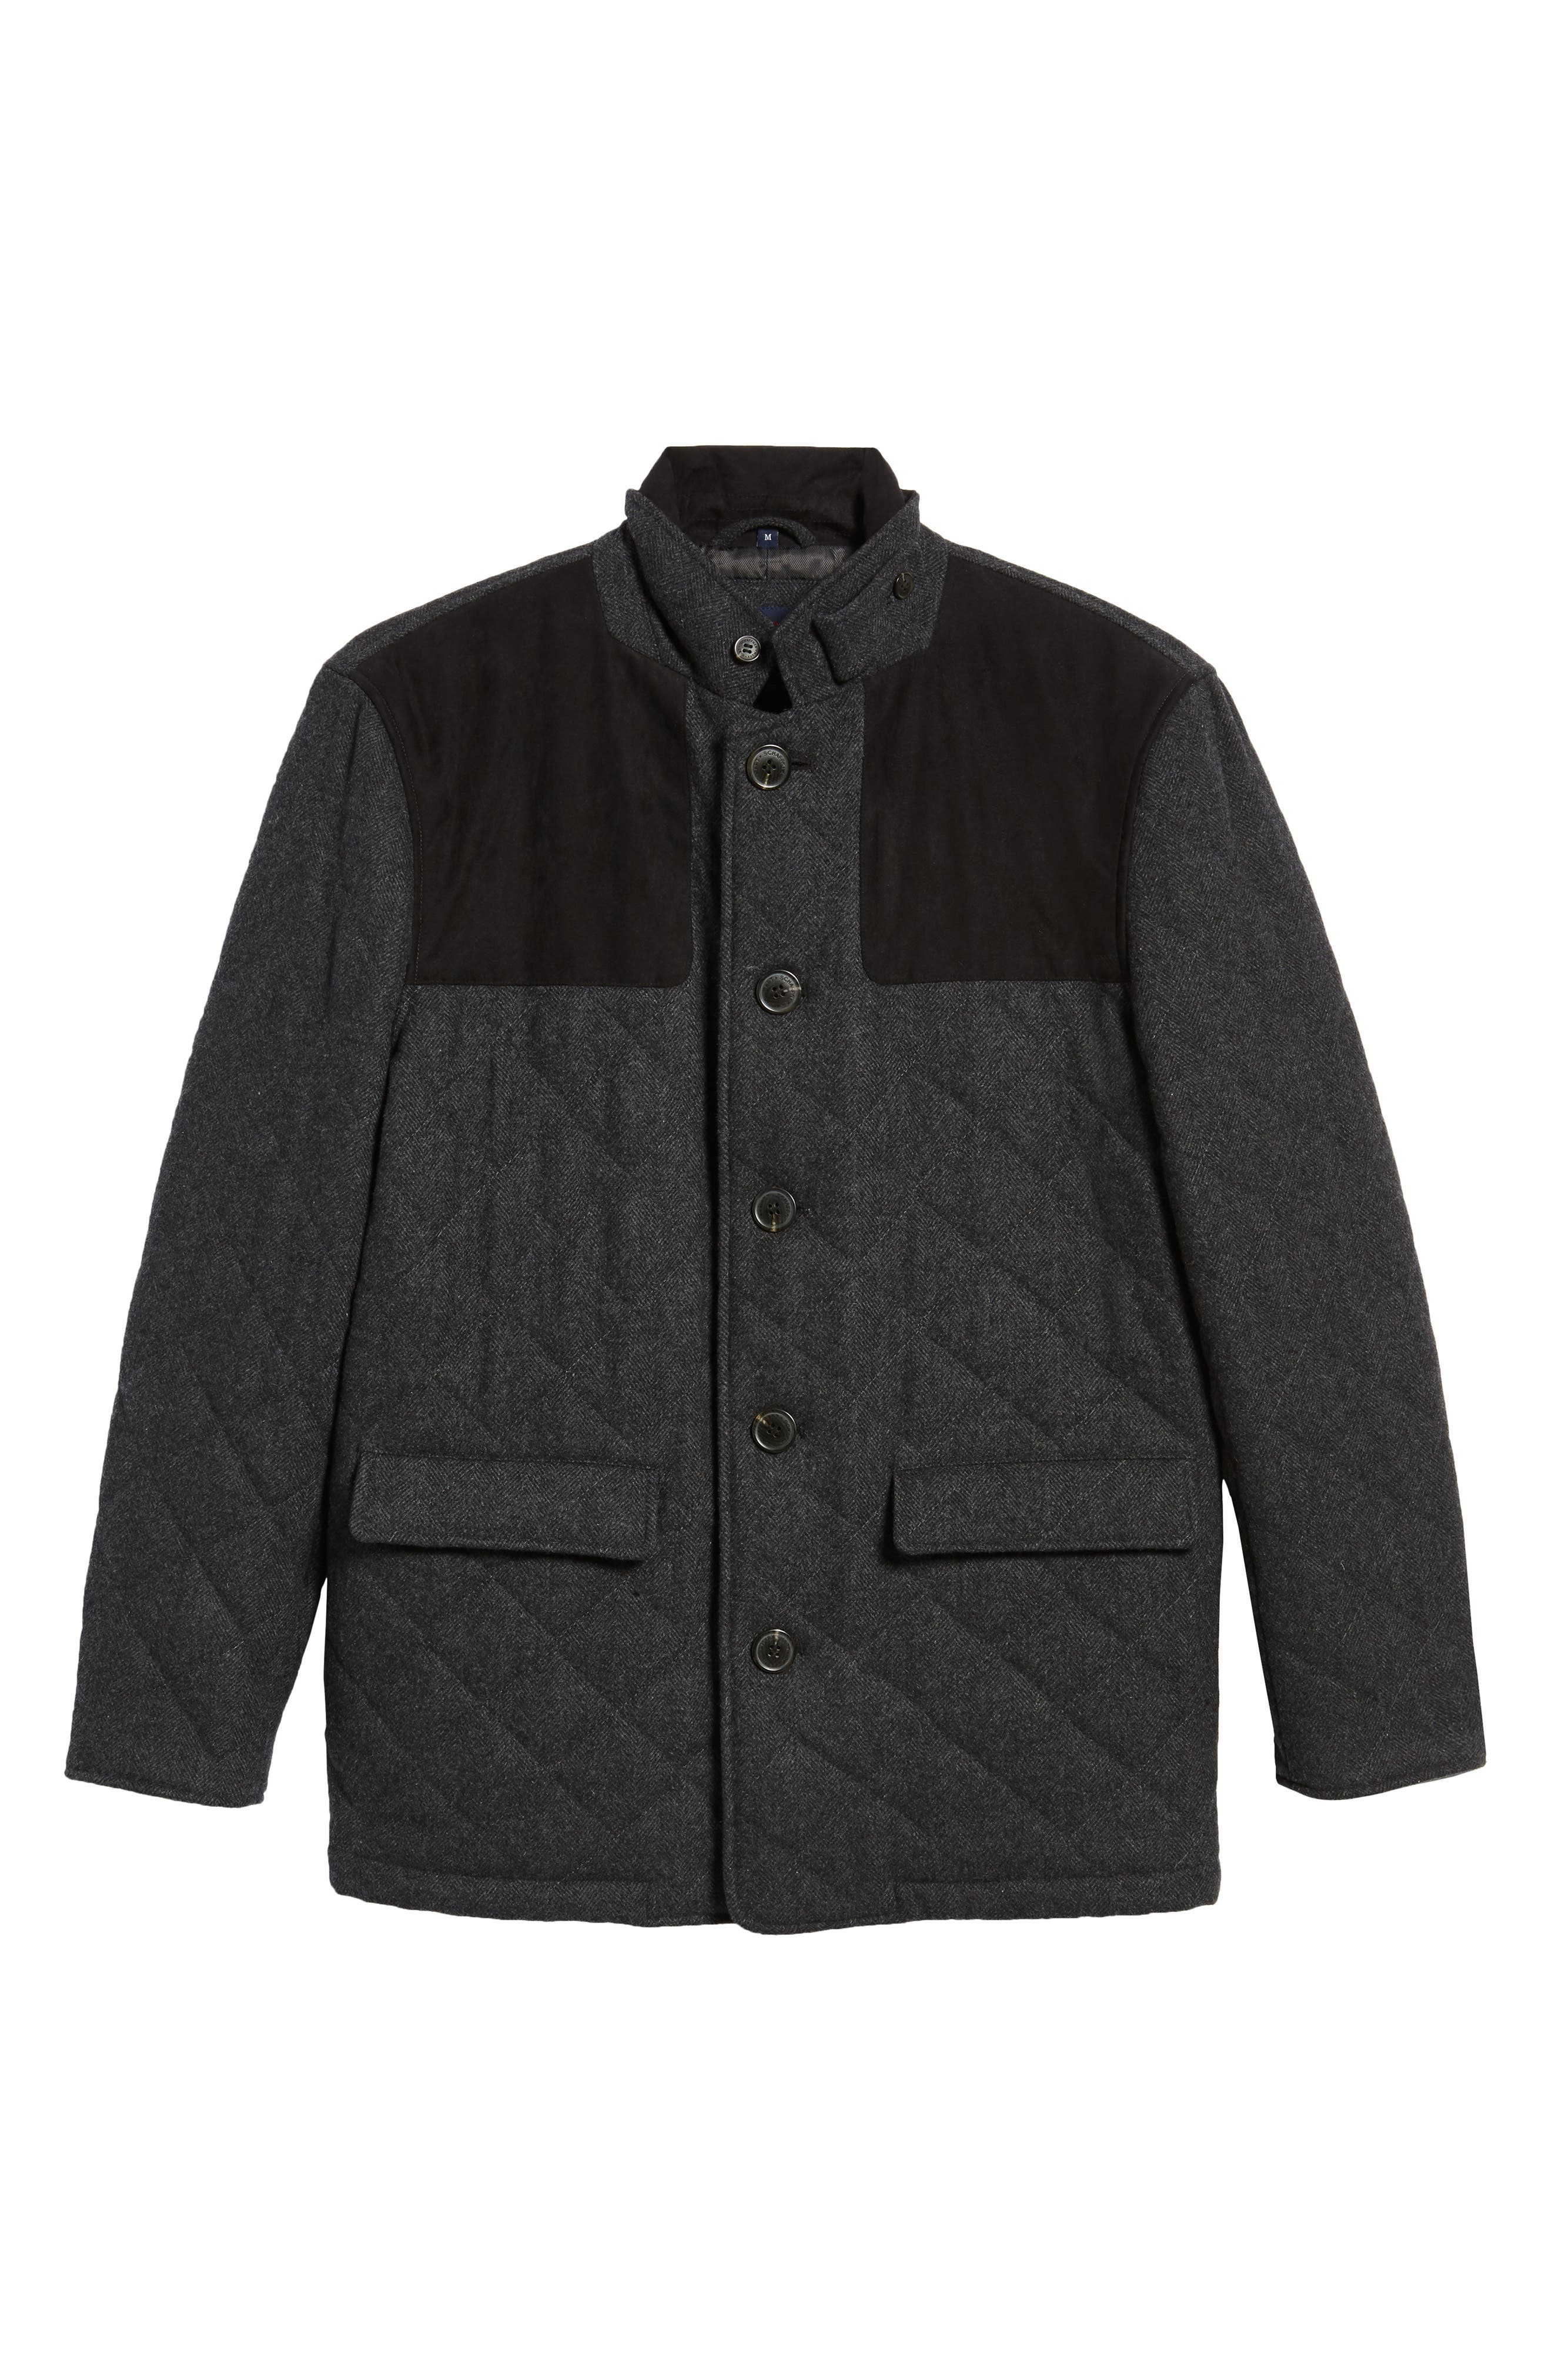 'Shooter' Wool Blend Quilted Jacket,                             Alternate thumbnail 5, color,                             024